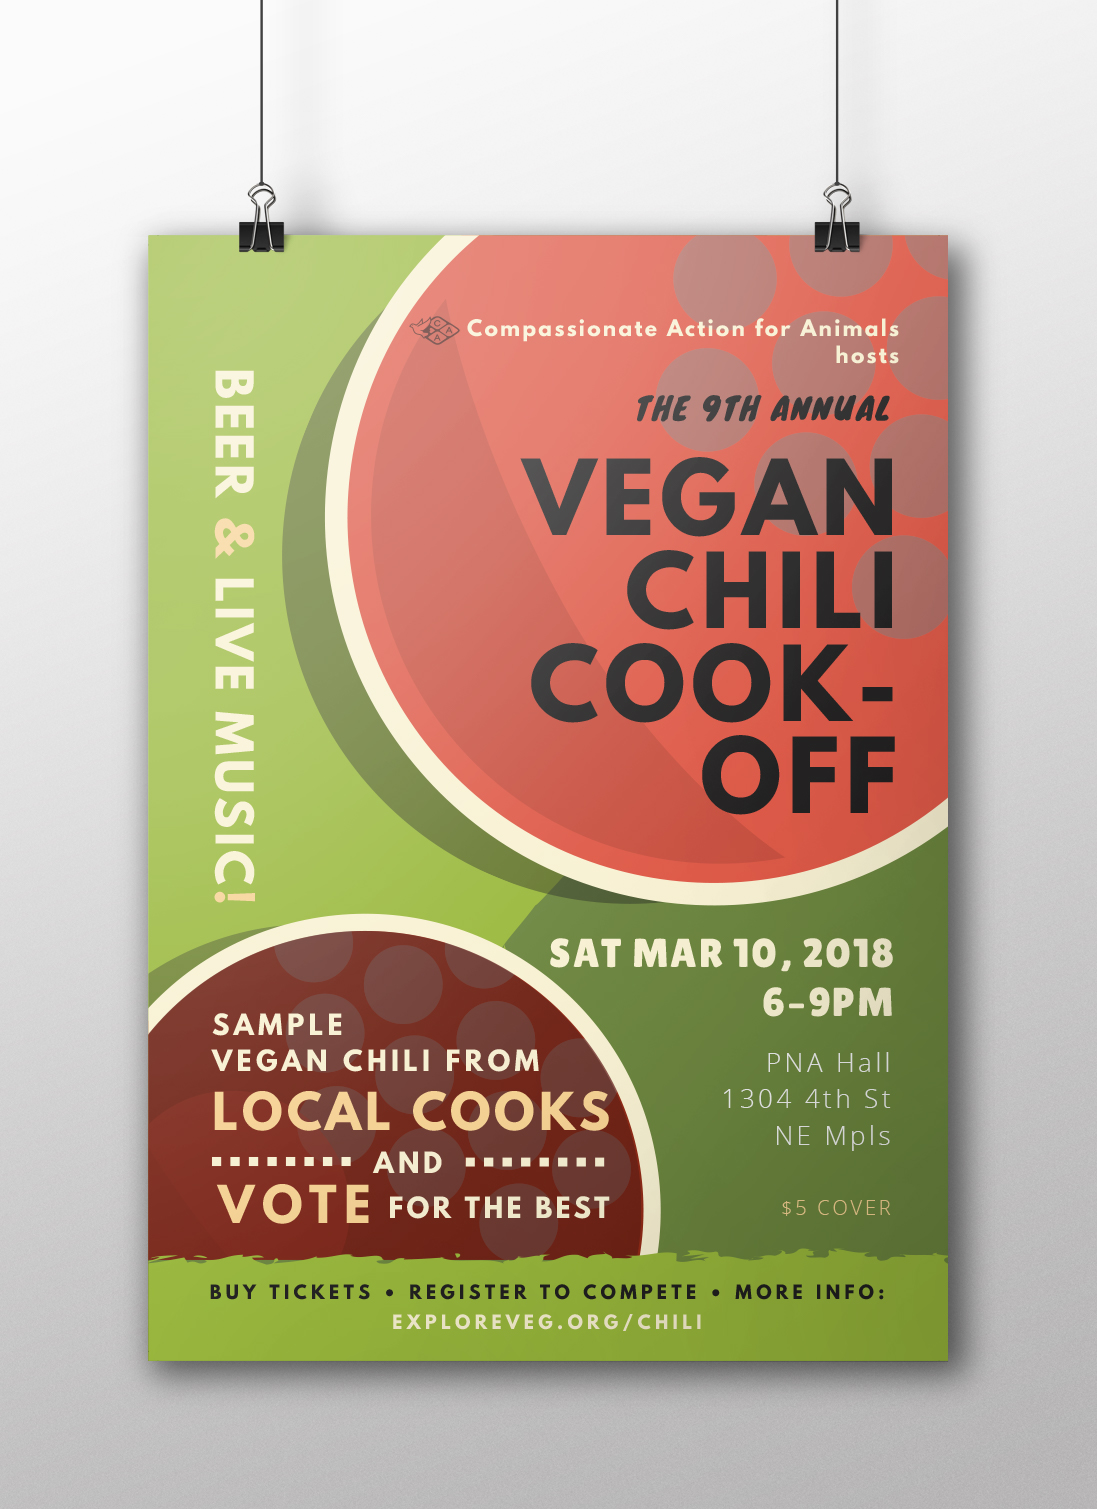 Letter size poster for the Vegan Chili Cookoff.